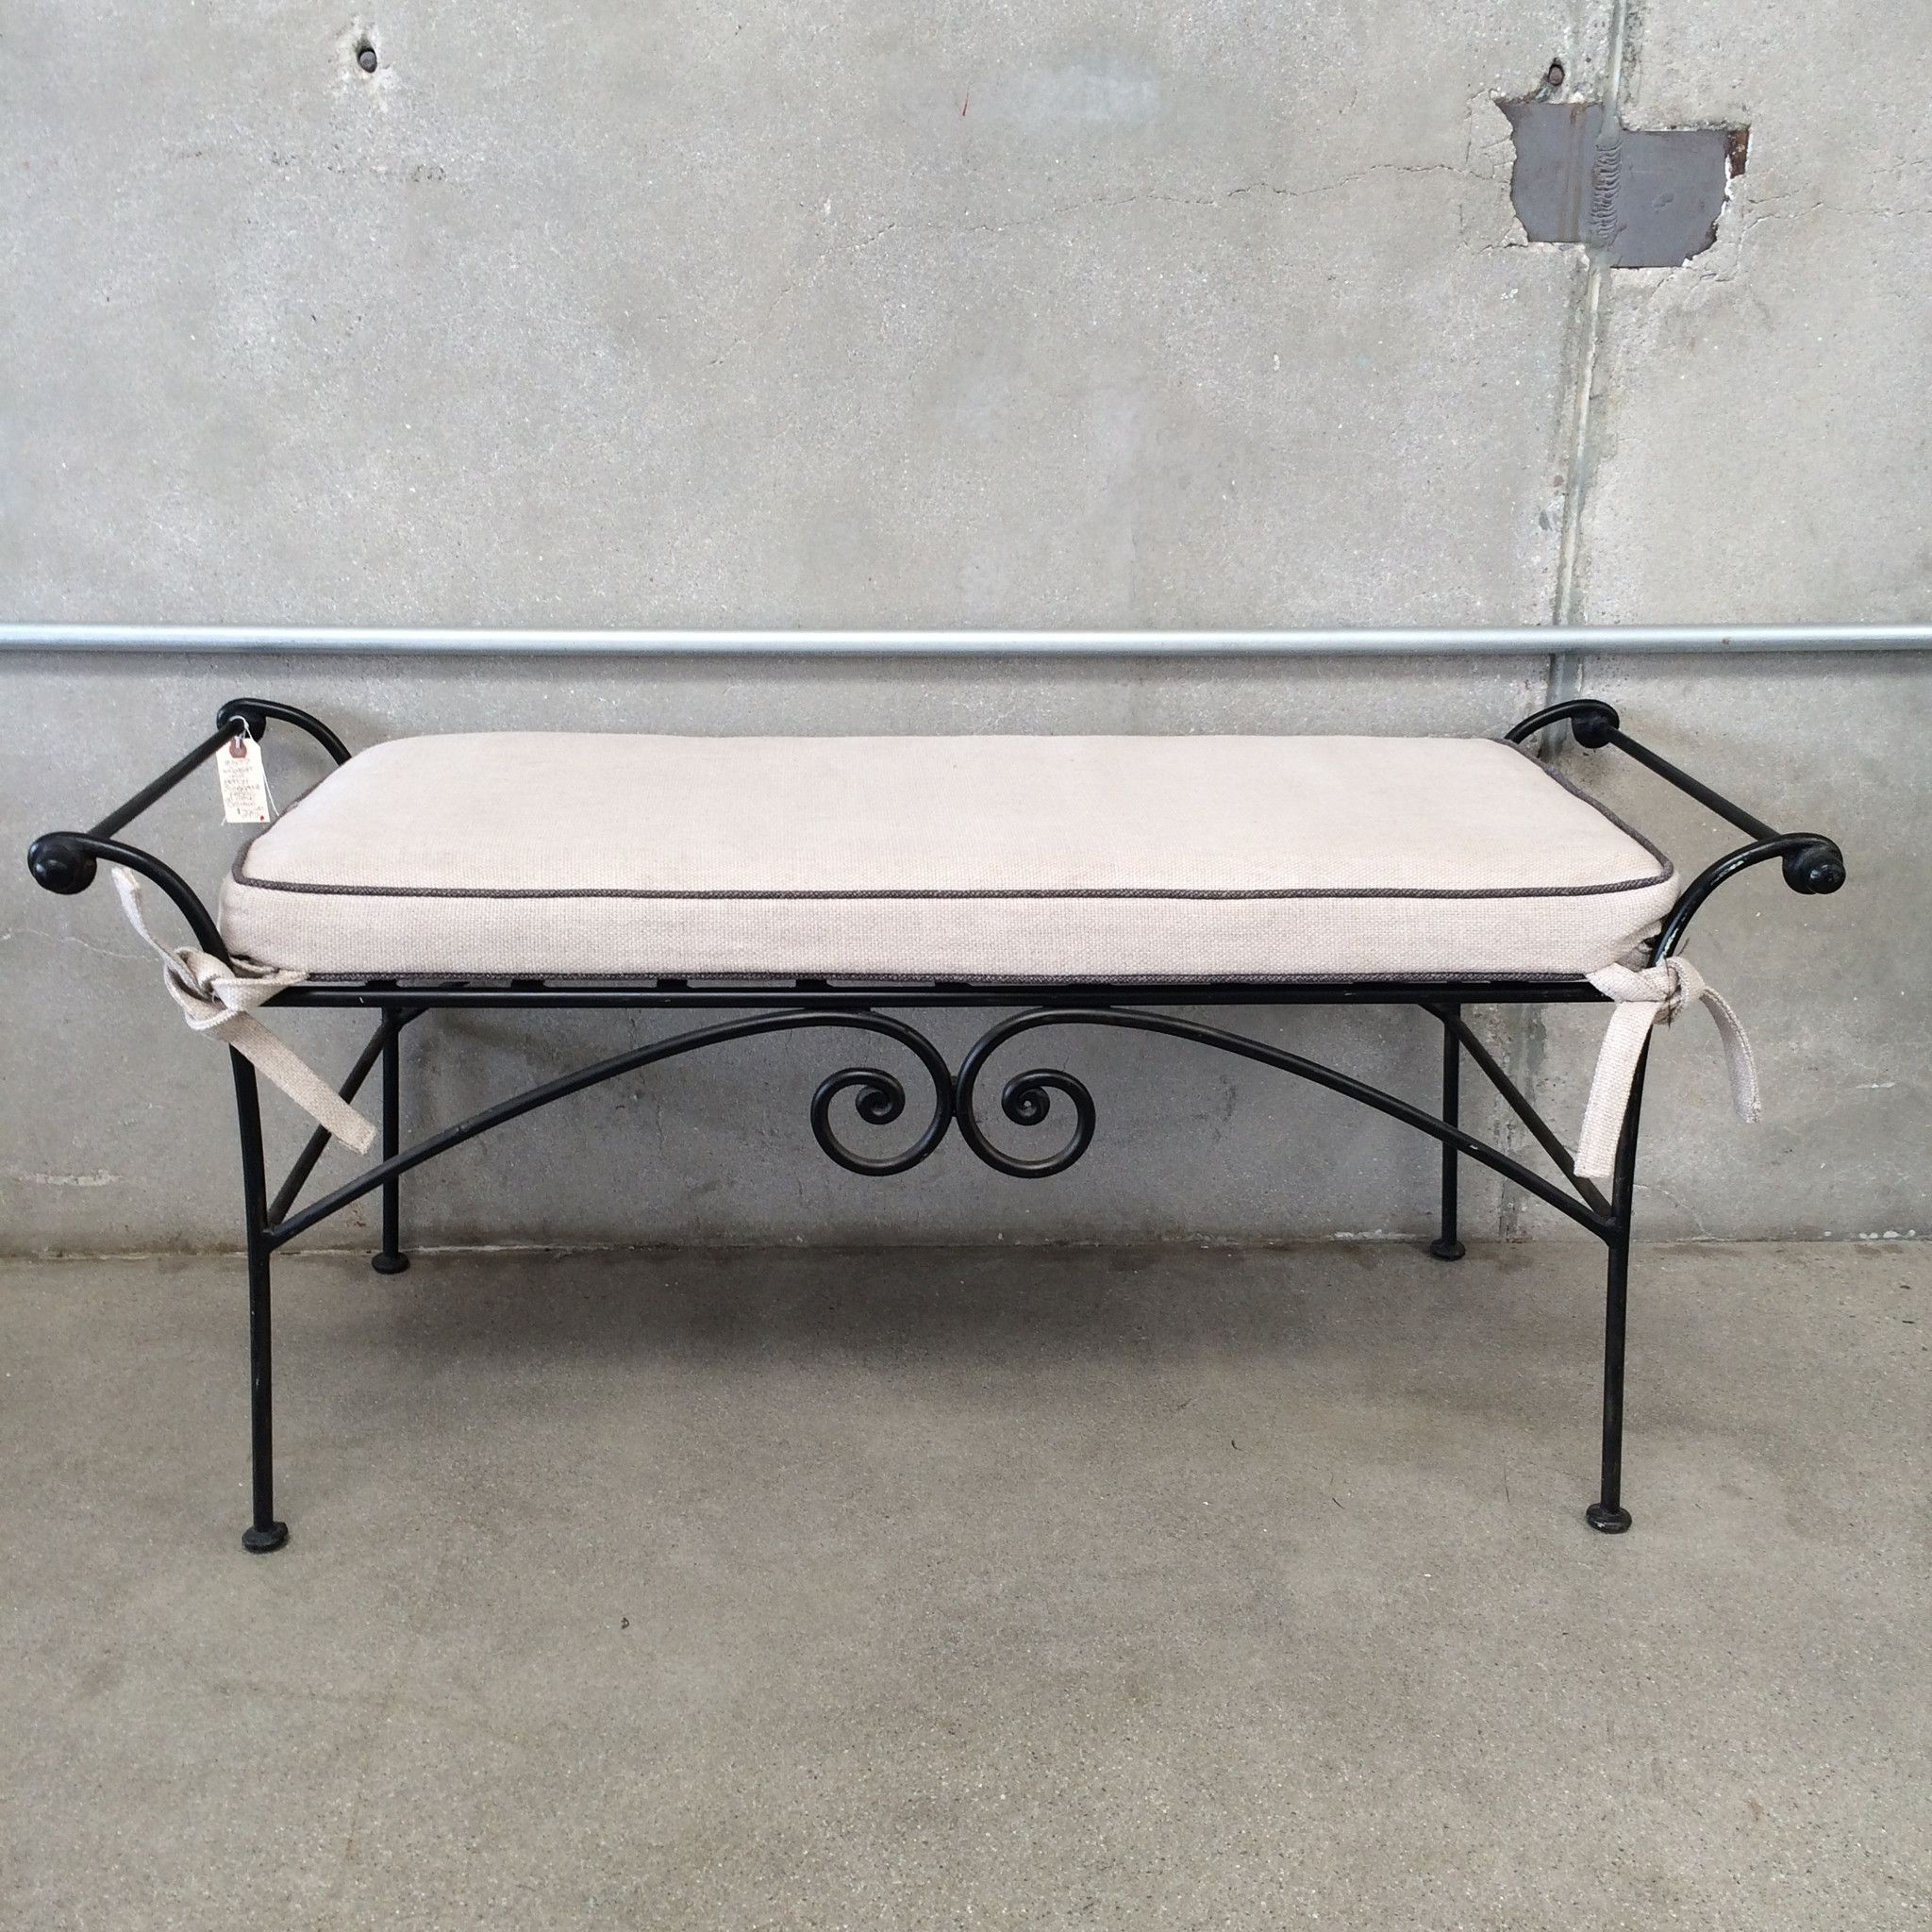 Wrought Iron Bench With Sunbrella Fabric On New Cushion 20 X 45 X 20 Wrought Iron Bench Iron Bench Iron Storage